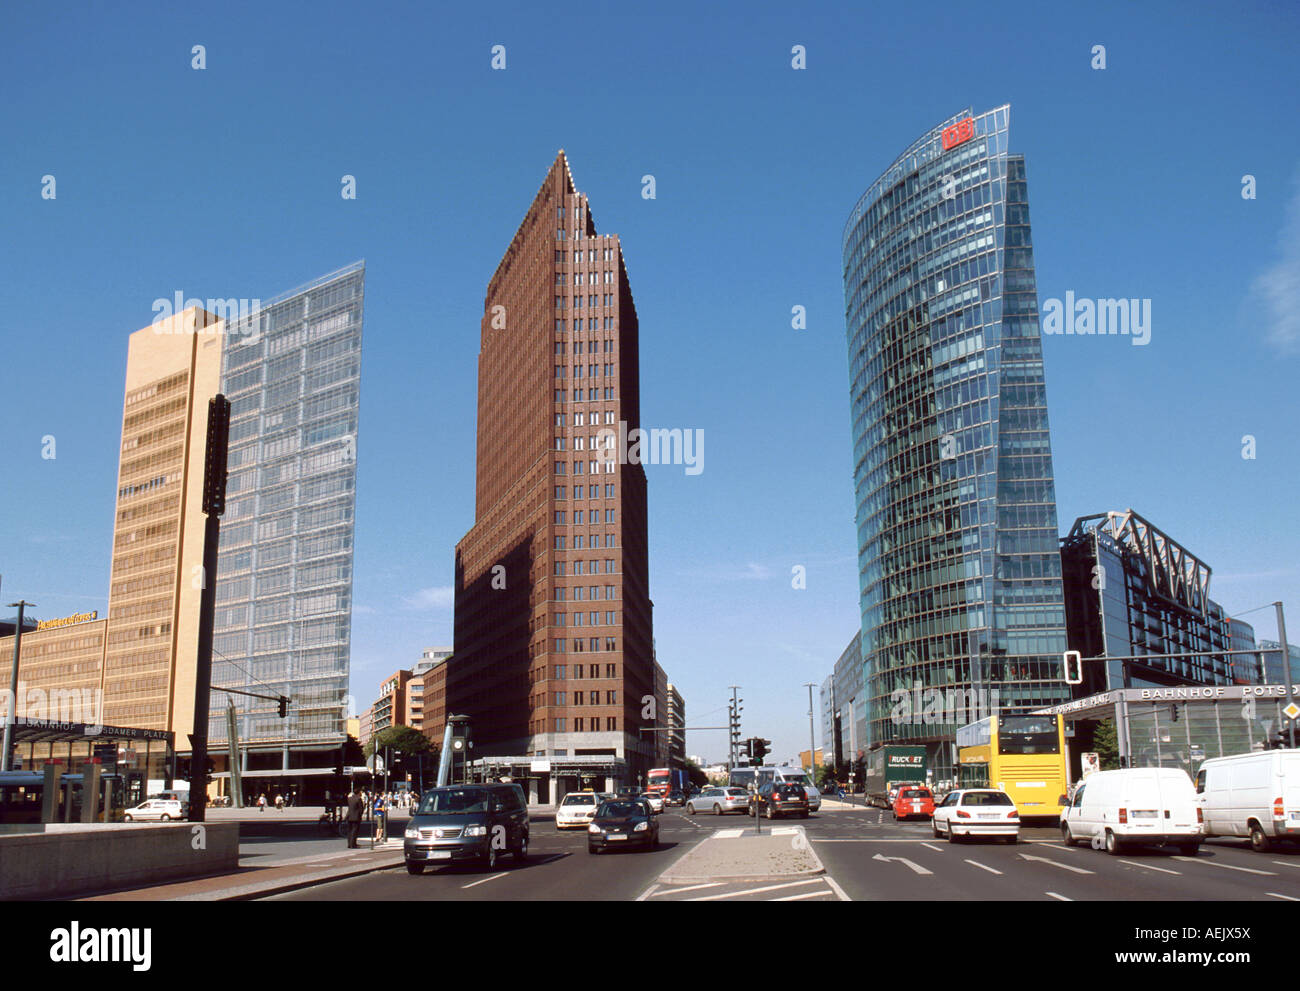 Deutsche Küche Potsdamer Platz Potsdamer Platz, Building By Renzo Piano, Kollhoff-tower And Stock Photo - Alamy